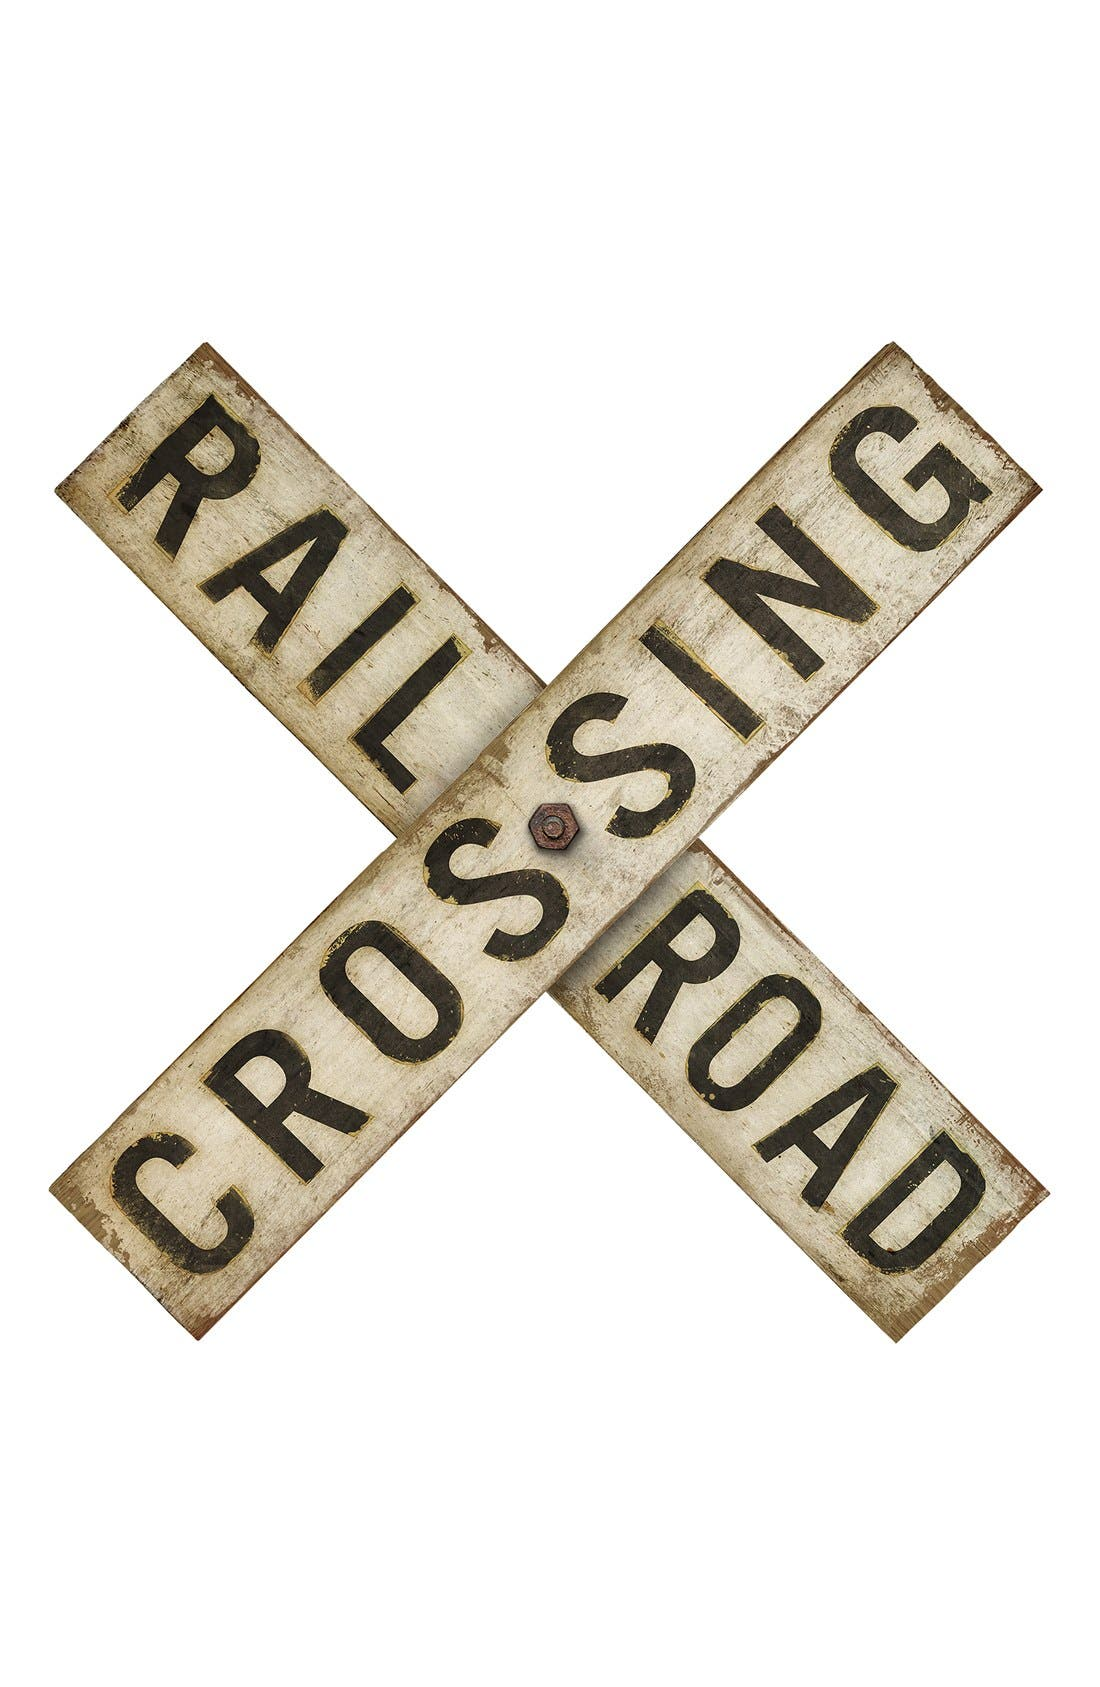 Main Image - Spicher and Company 'Railroad Crossing' Vintage Look Sign Artwork